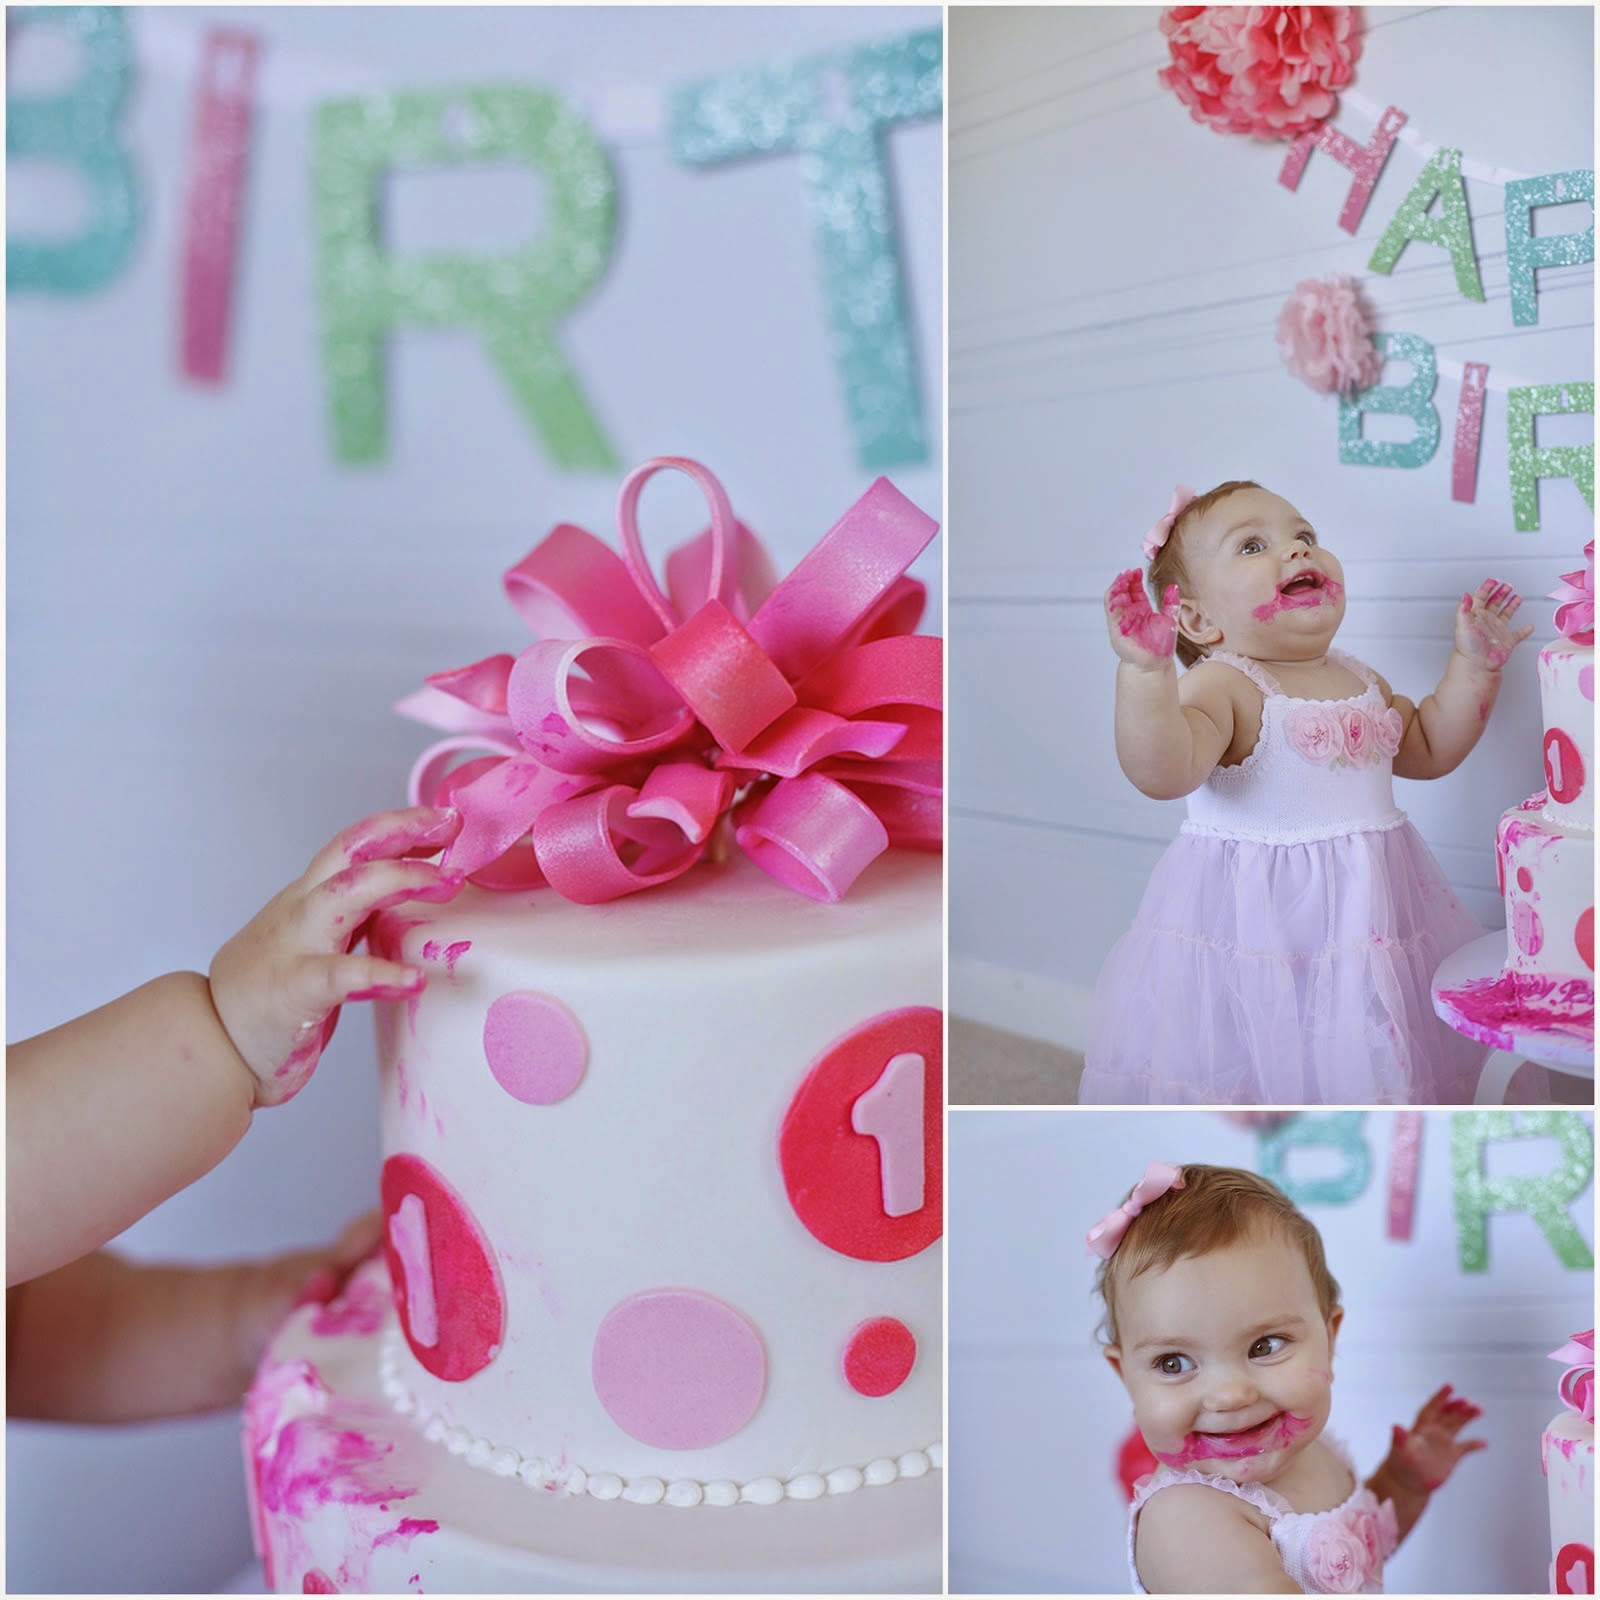 Baby girl birthday decoration ideas image inspiration of for Baby birthday decoration